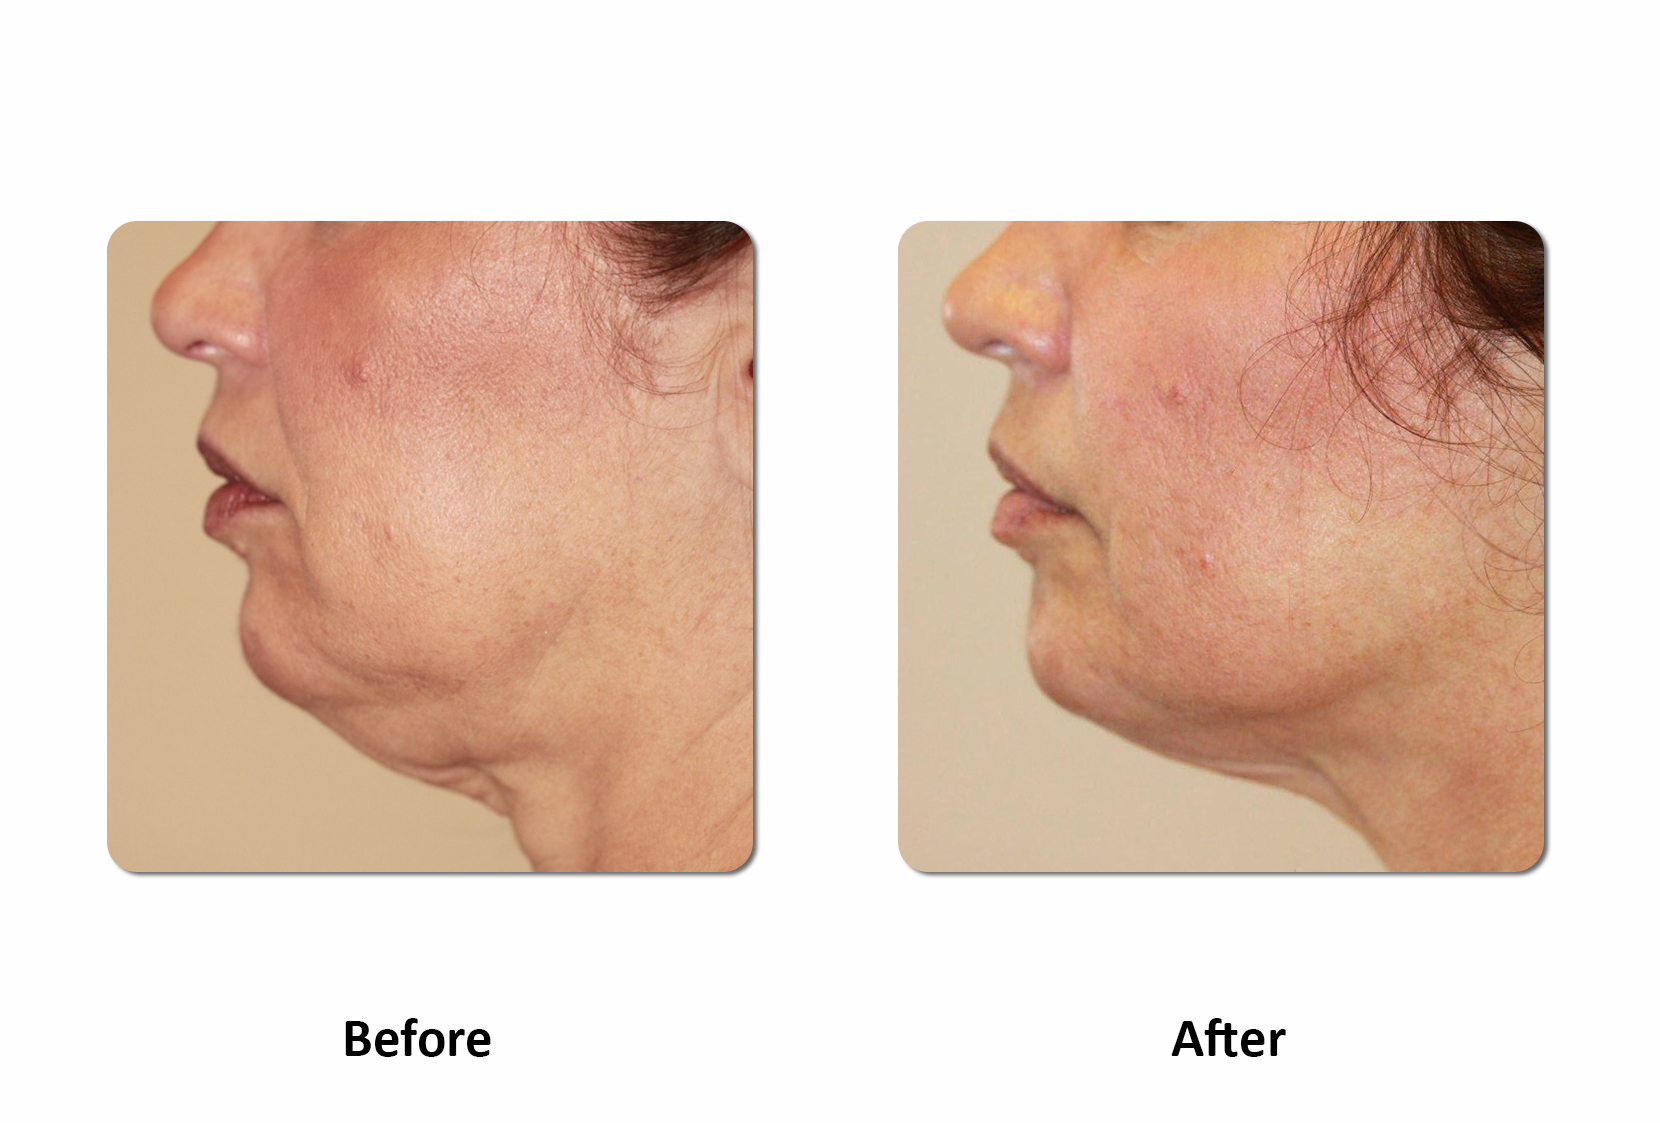 image of neck before and after a refit body contouring treatment